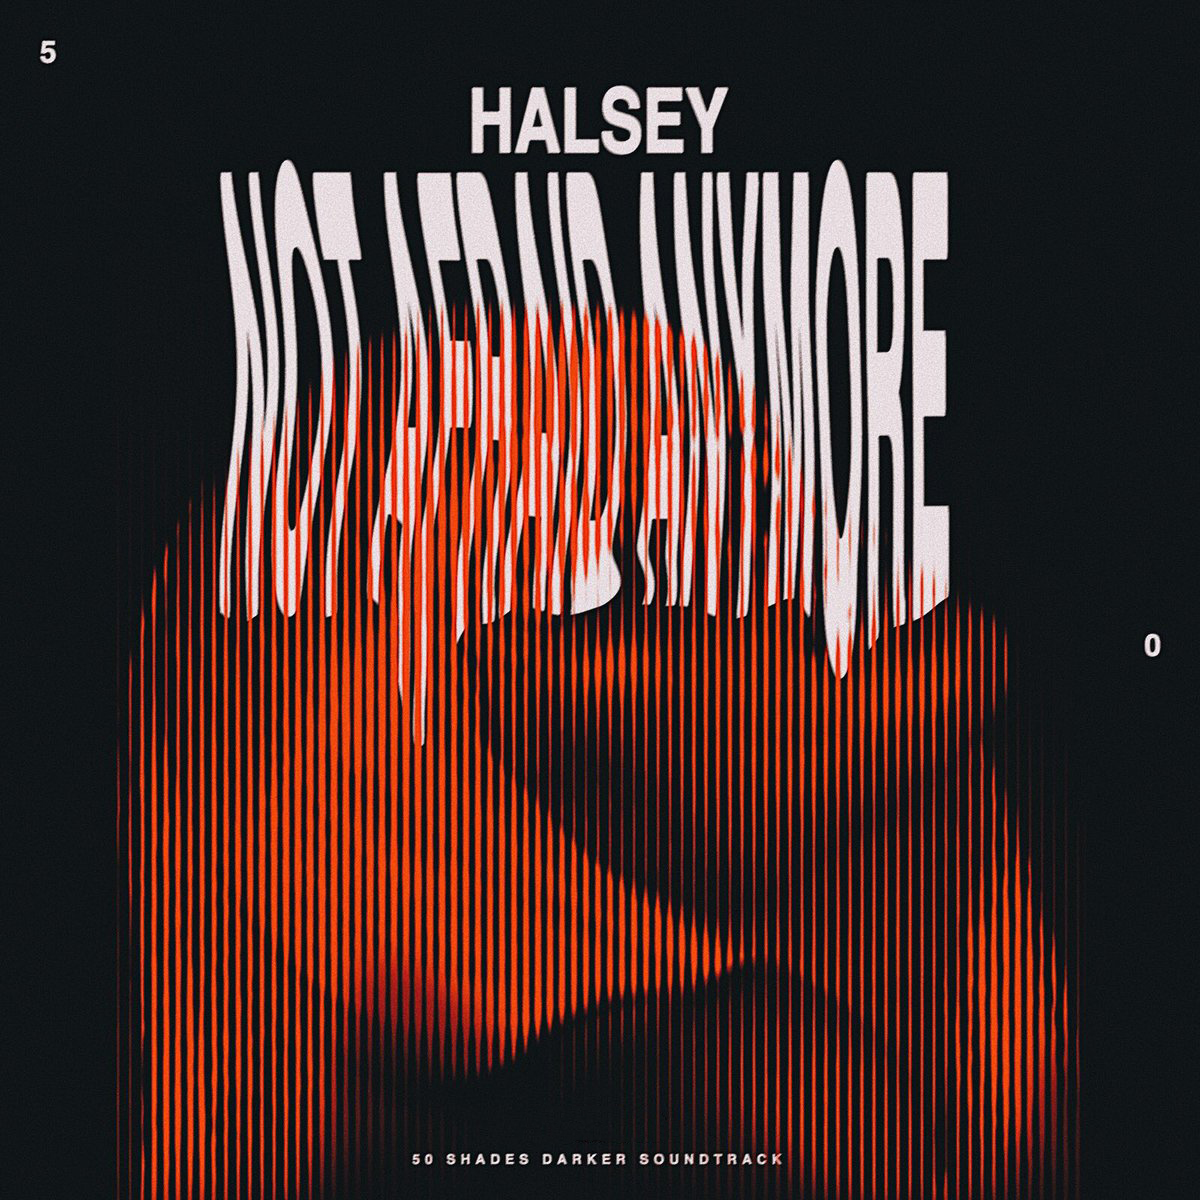 halsey single guys Halsey is soaking up the sun in mexico the singer was pictured taking a dip in a black bikini with sexy black zippers  39, loves dating younger men like luka sabbat: a guy her age could never .